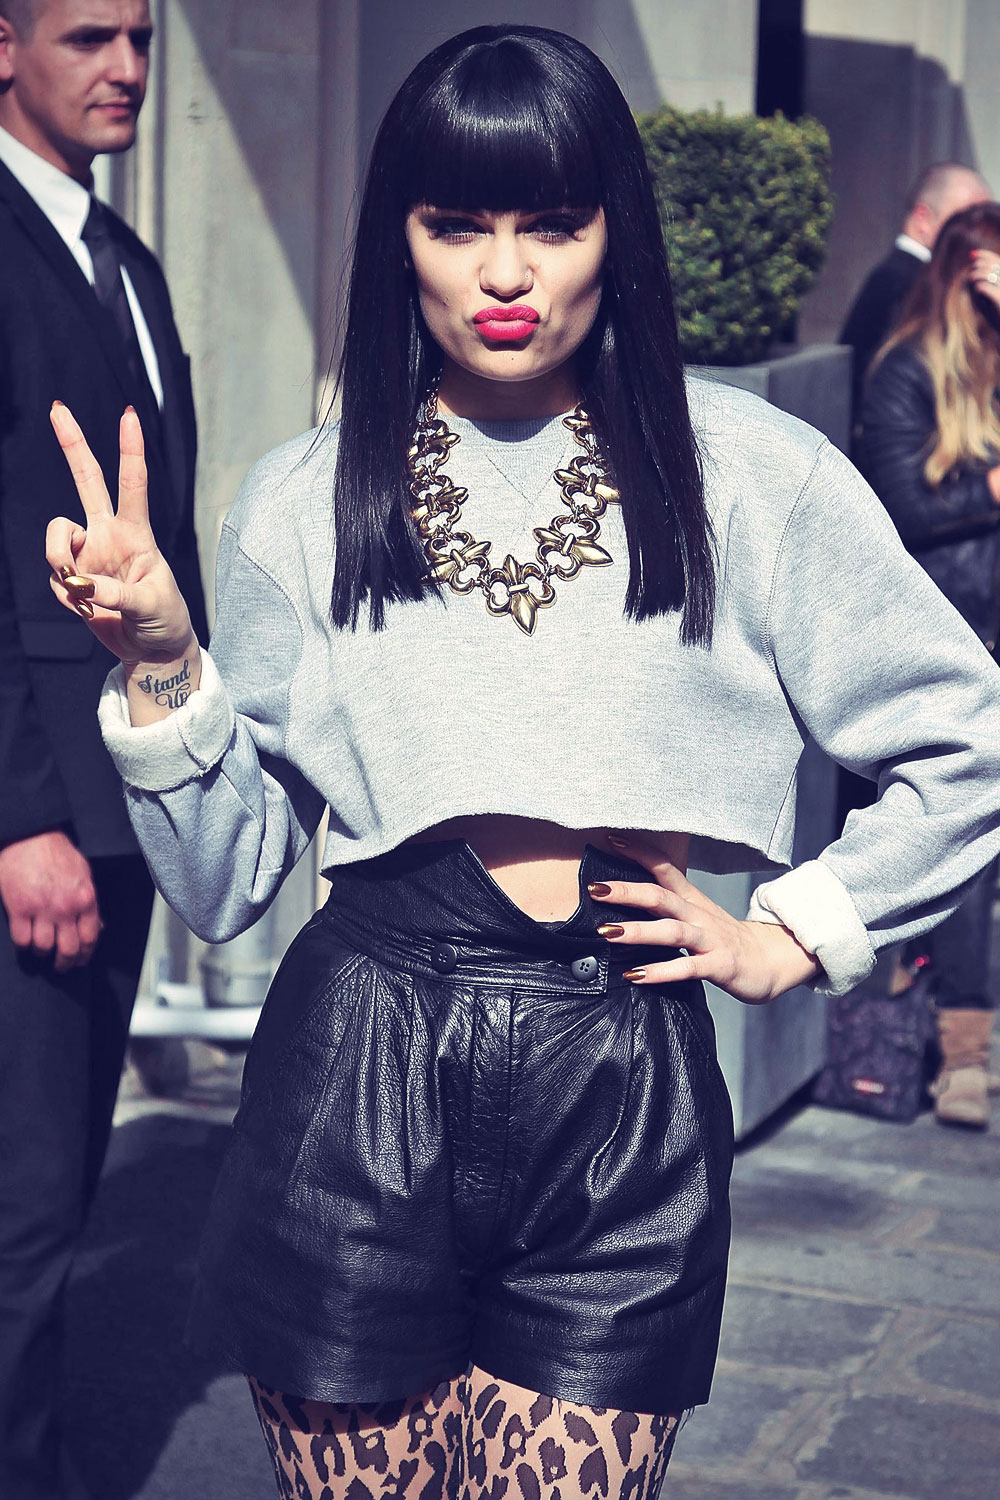 Jessie J leaving her Hotel in Paris